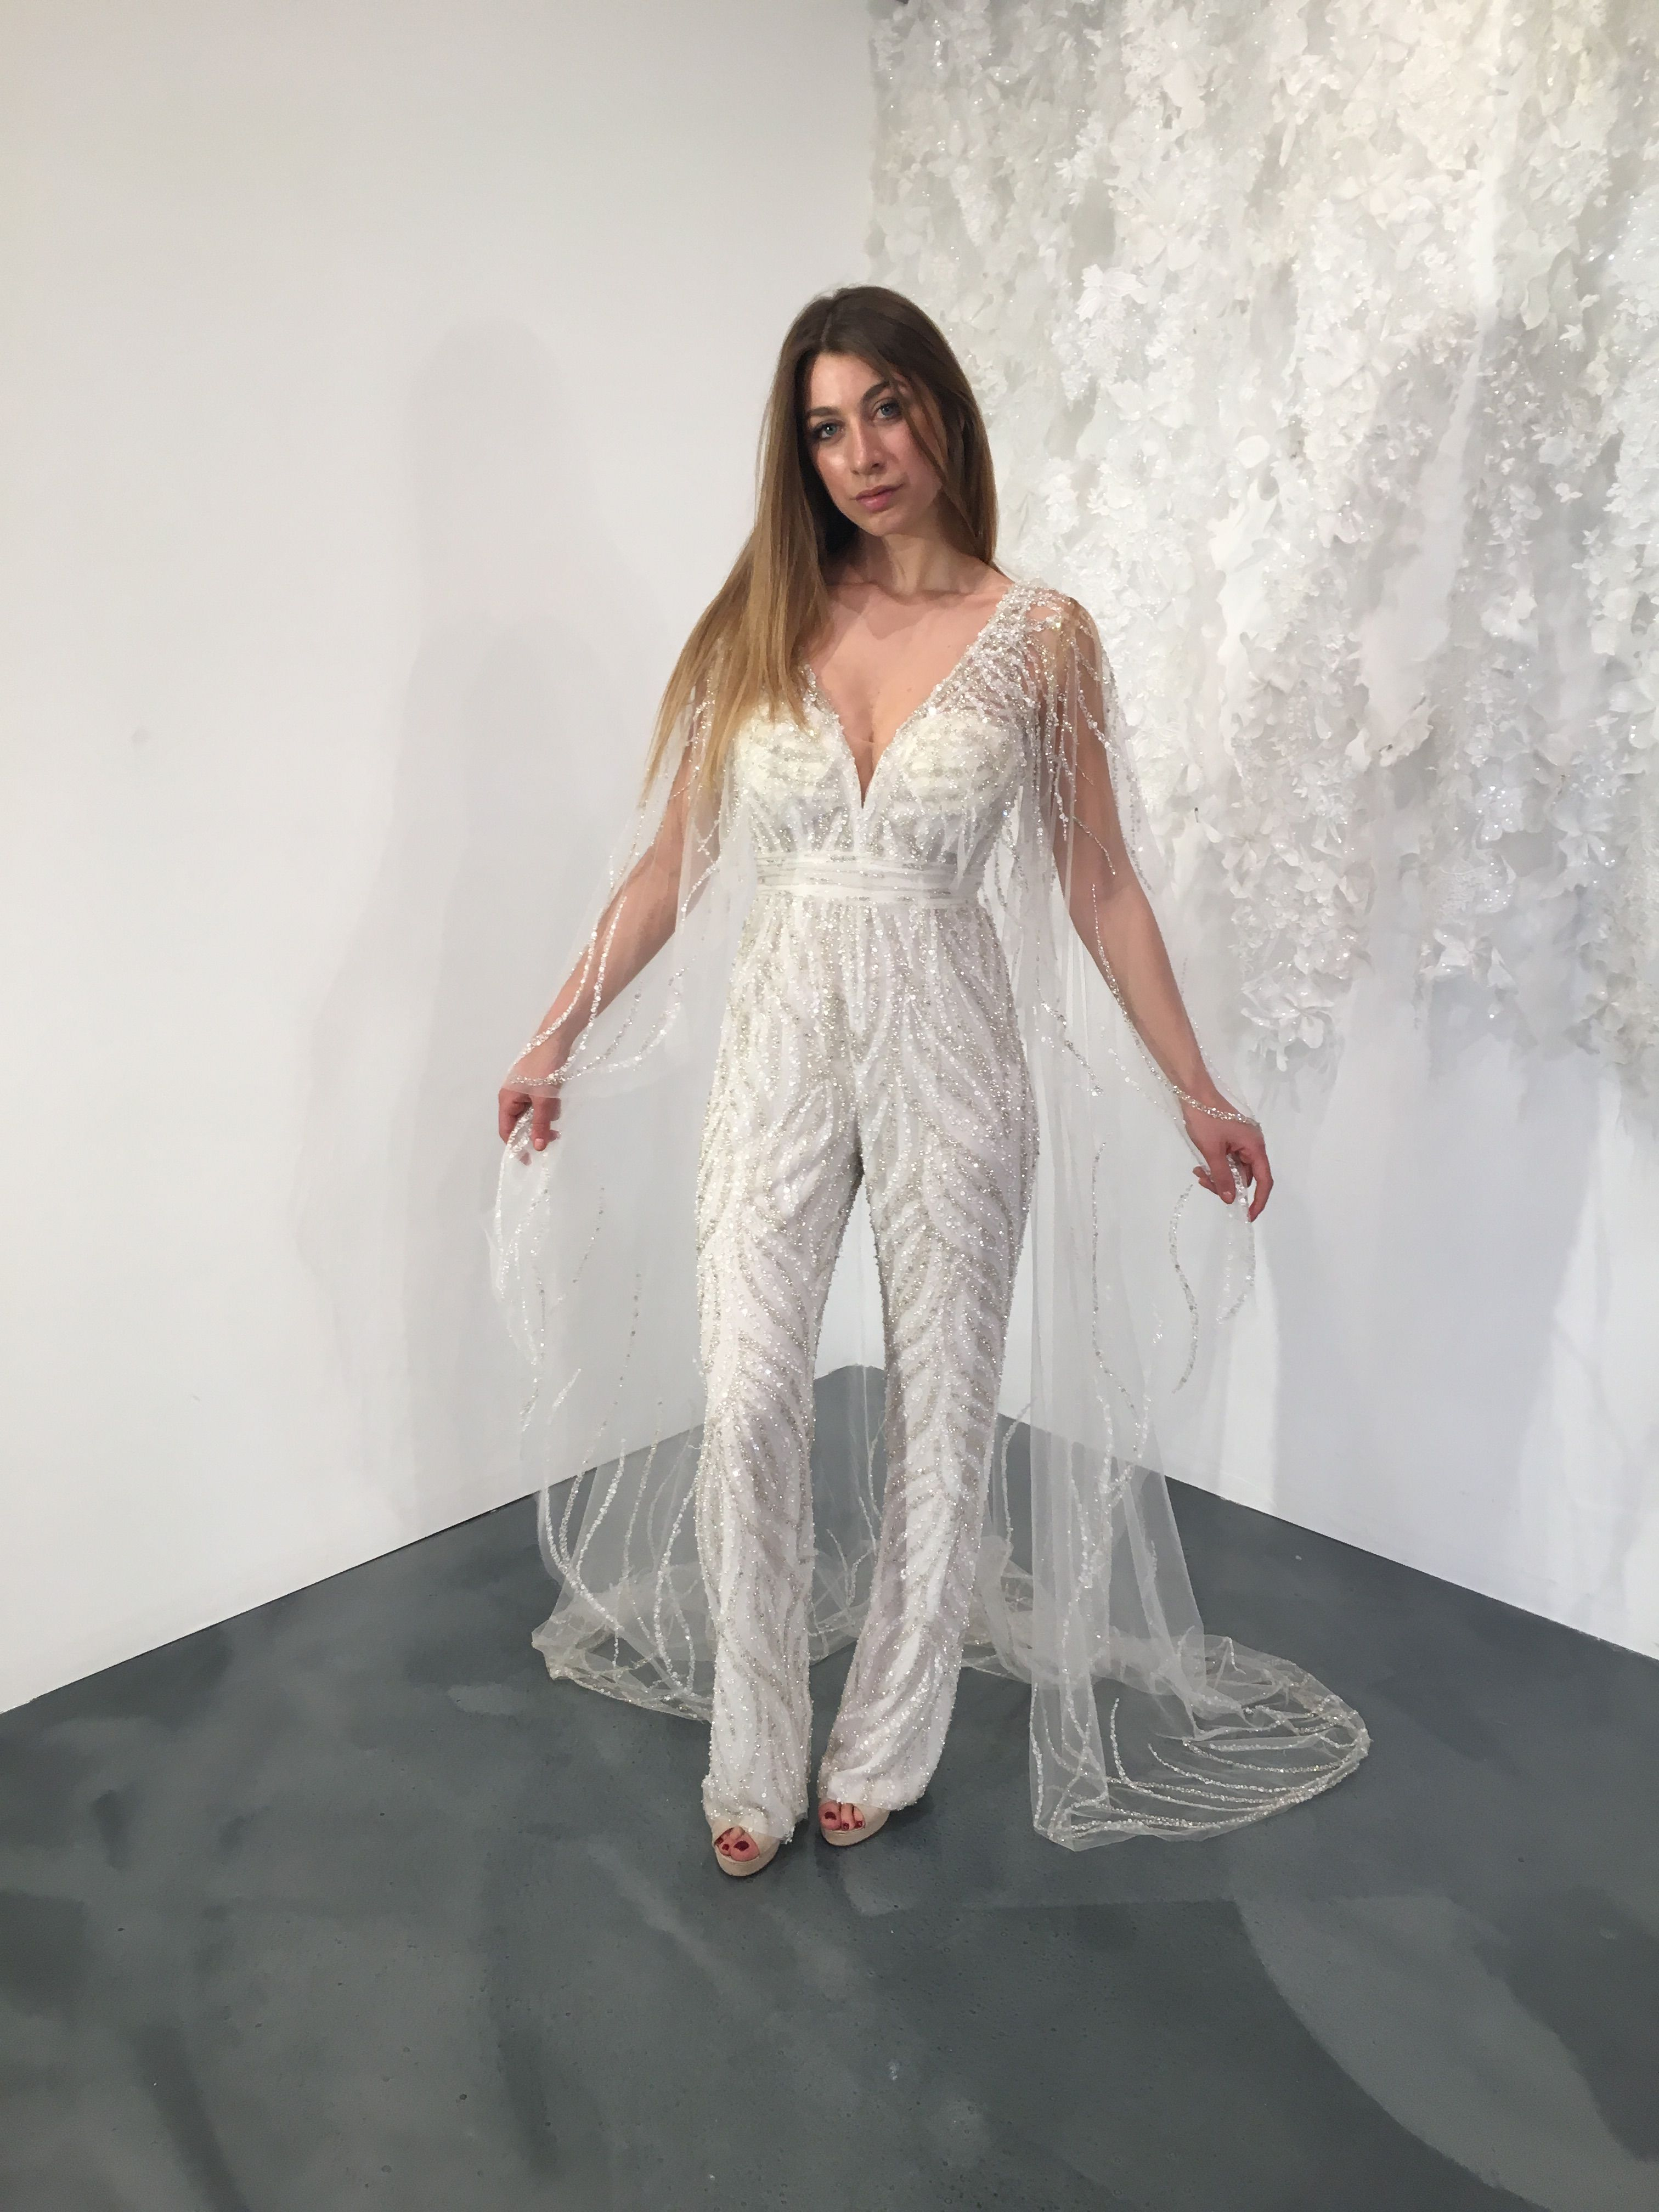 a1332c5fd9b Stephen Yearick Jumpsuit. Visit www.bridalreflections.com for more  information.